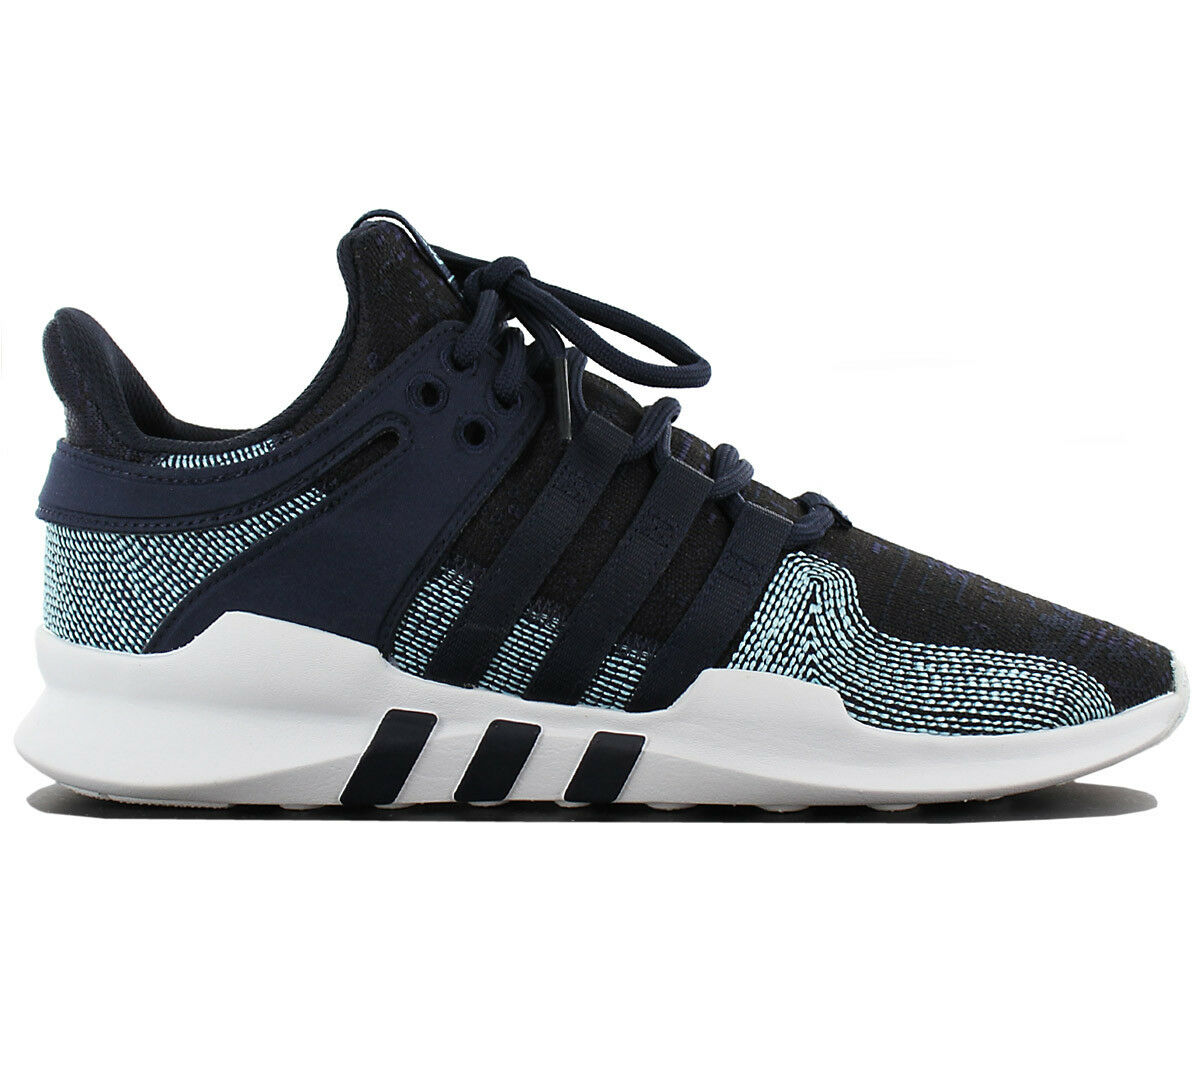 Adidas Originals EQT Equipment Equipment Equipment Support ADV CK Parley LIMITED Schuhe CQ0299 NEU b845d9